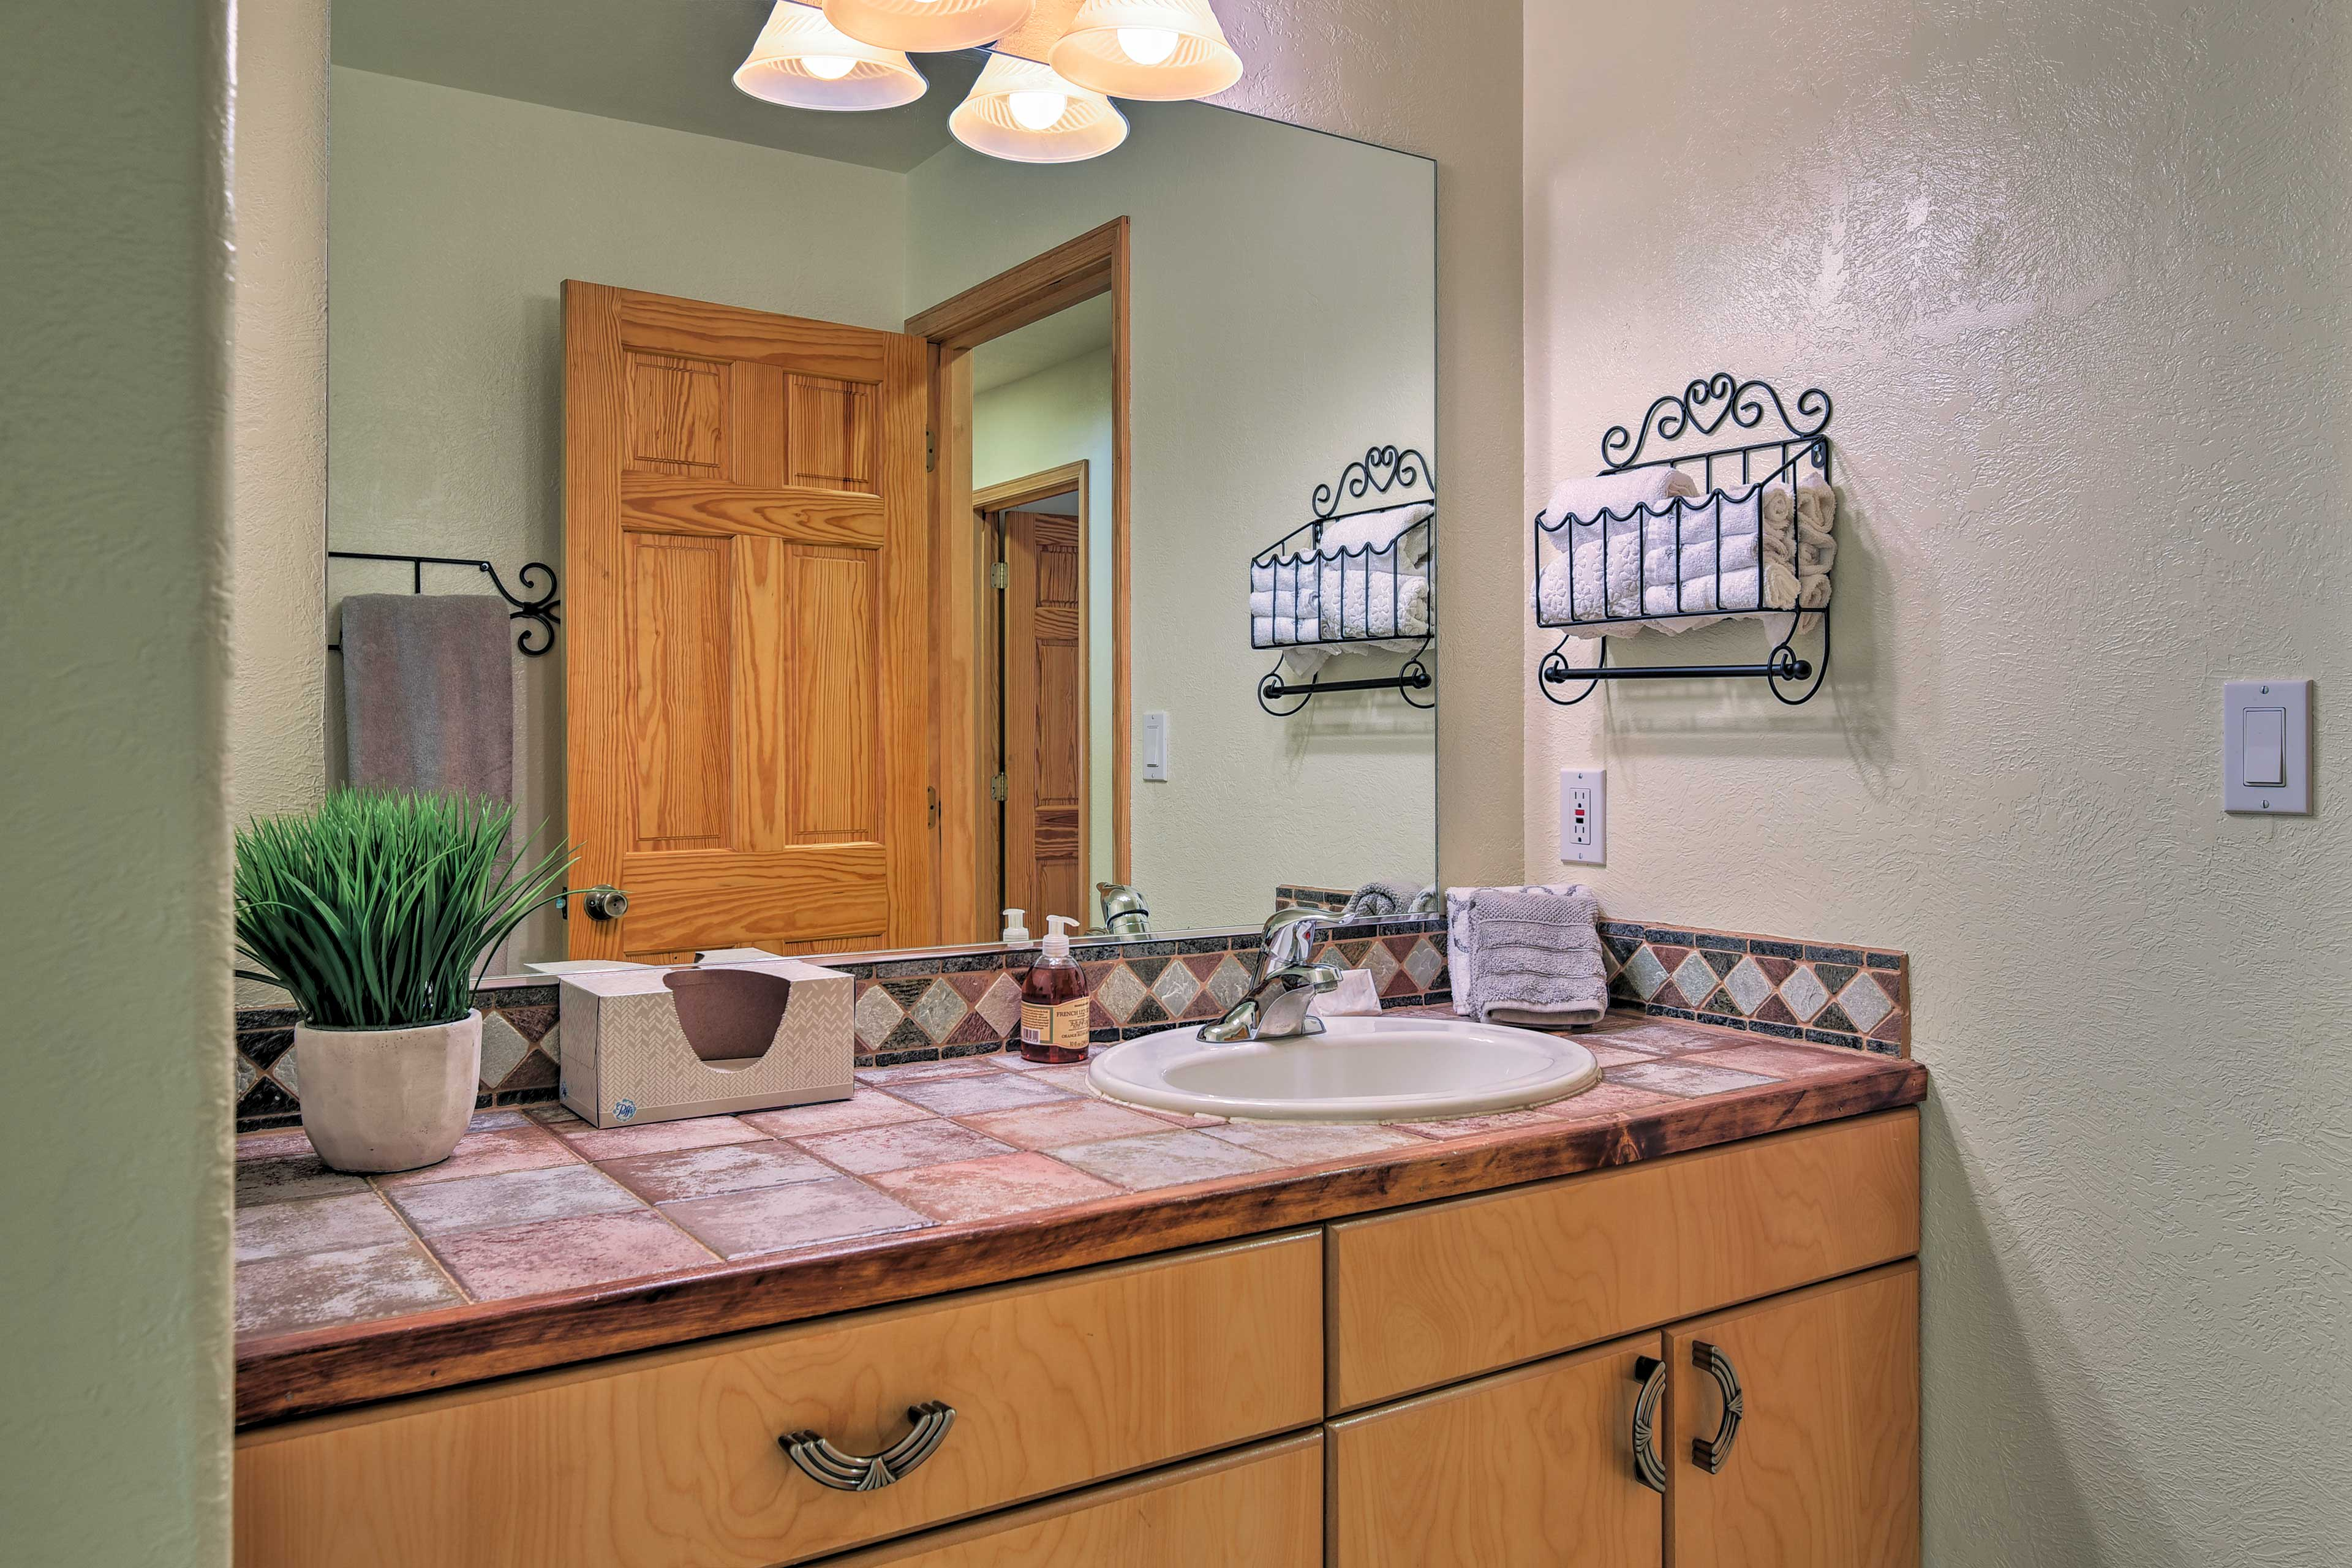 The en-suite bathroom features a shower/tub combo and rustic tile accents.